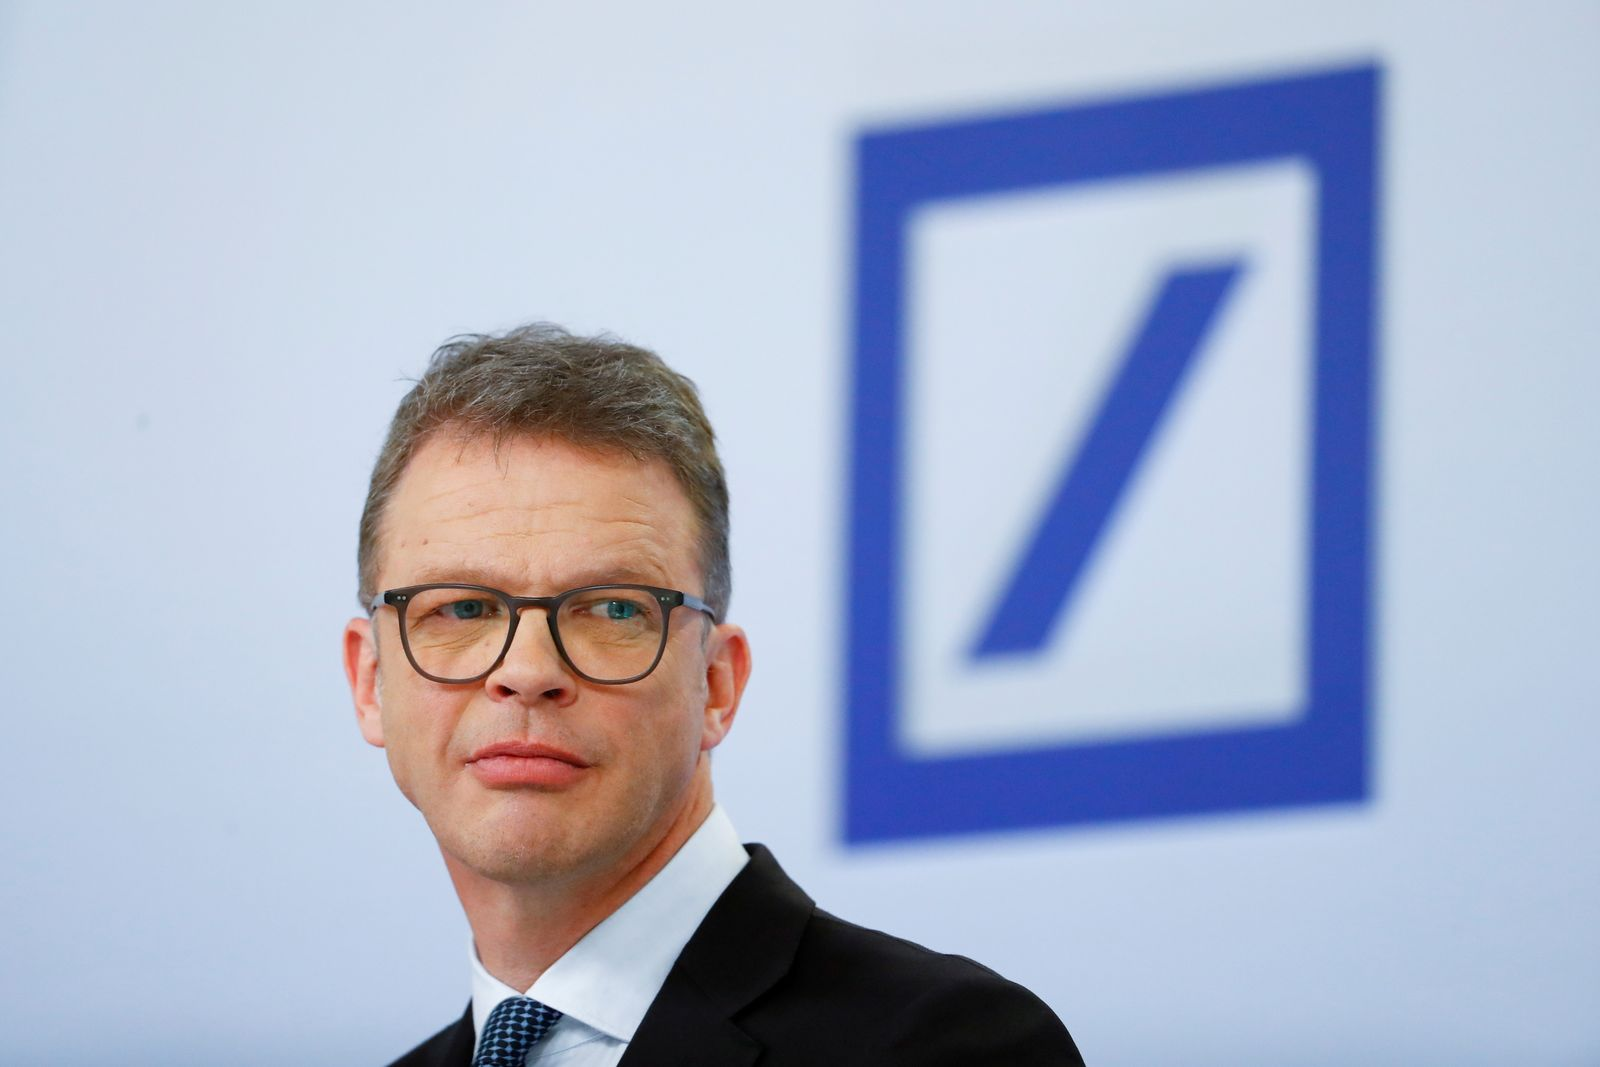 FILE PHOTO: Christian Sewing, CEO of Deutsche Bank AG, looks on during the bank's annual news conference in Frankfurt